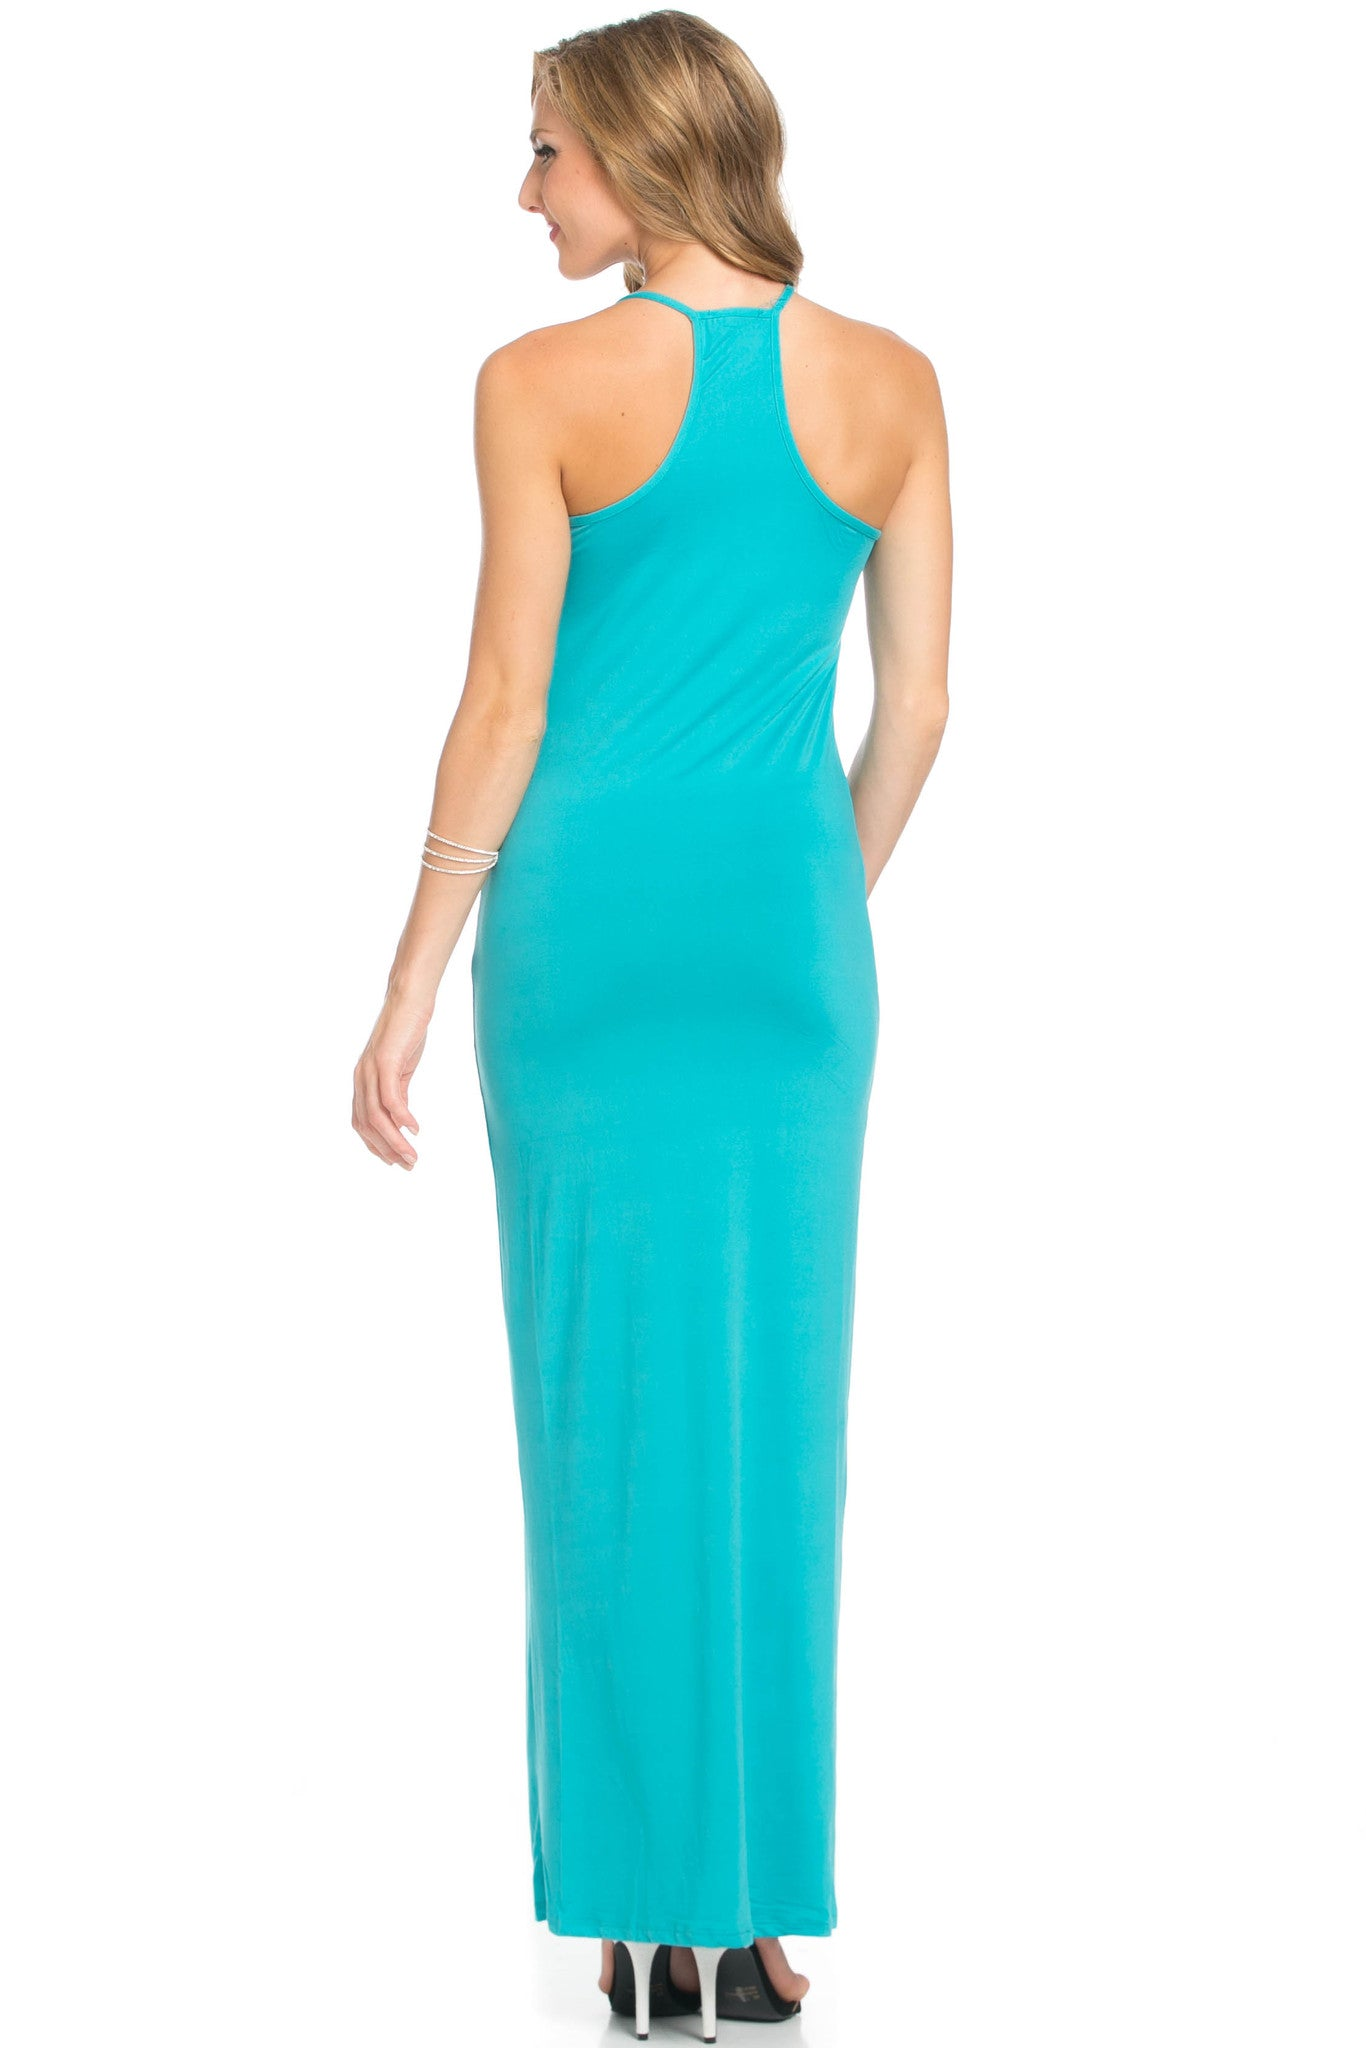 Micro Suede Jade Maxi Dress - Dresses - My Yuccie - 4